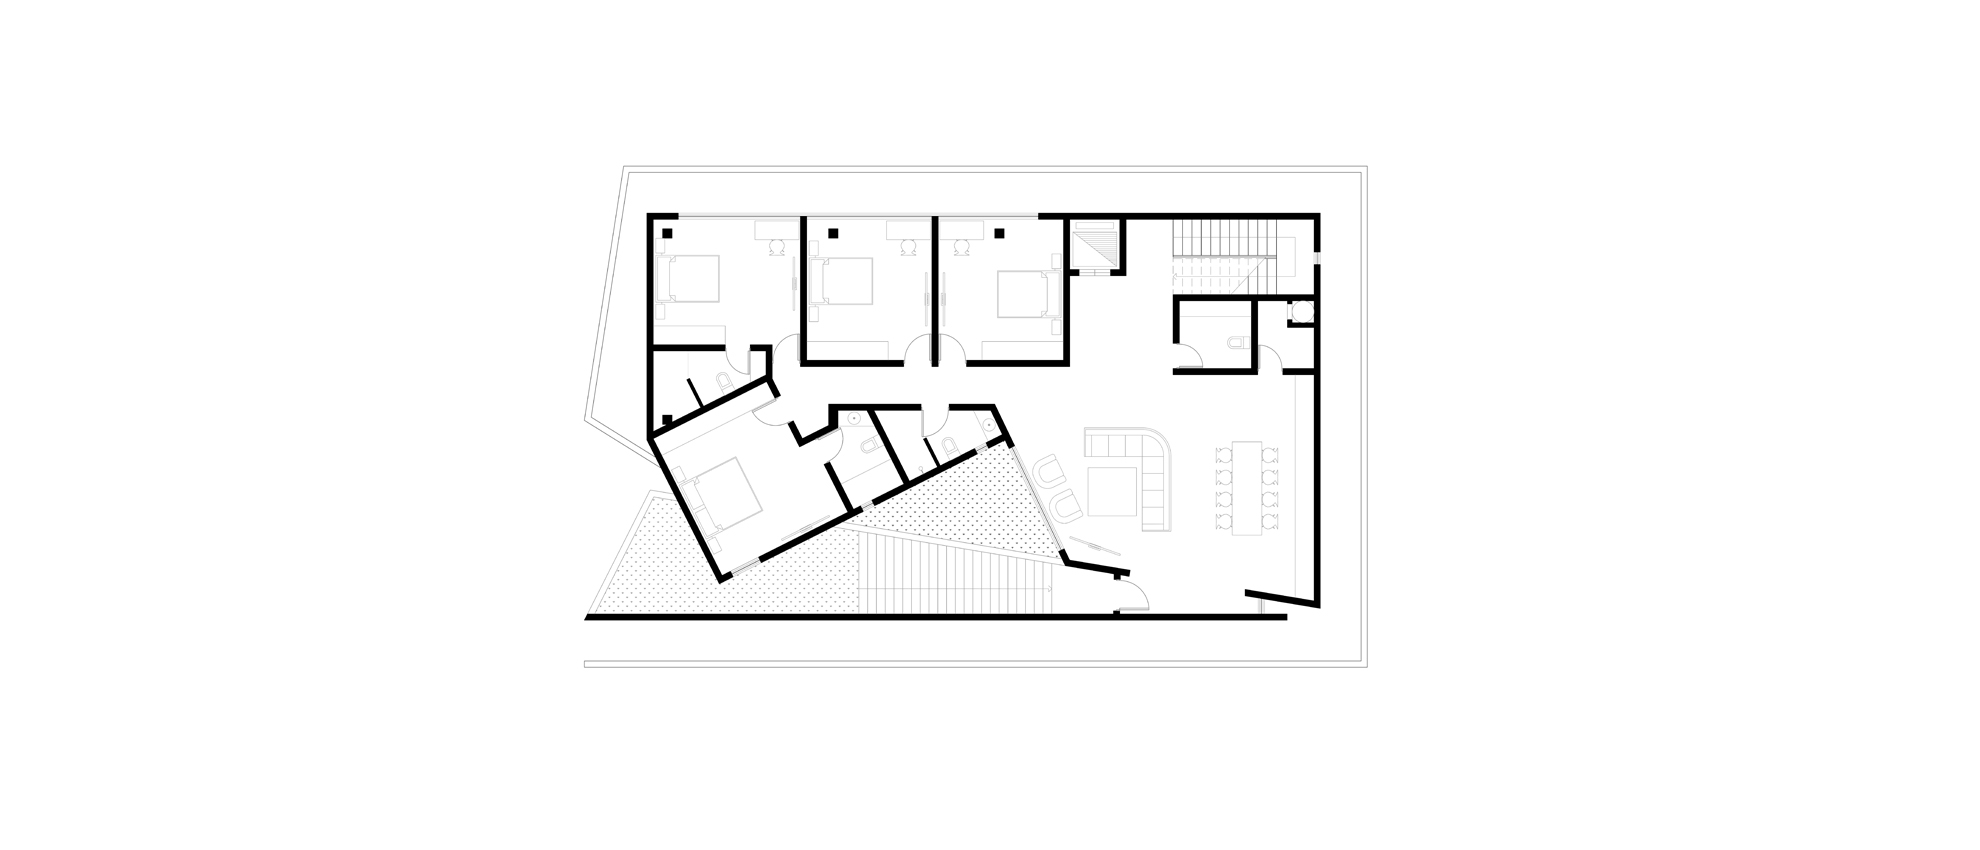 1Second Floor Plan